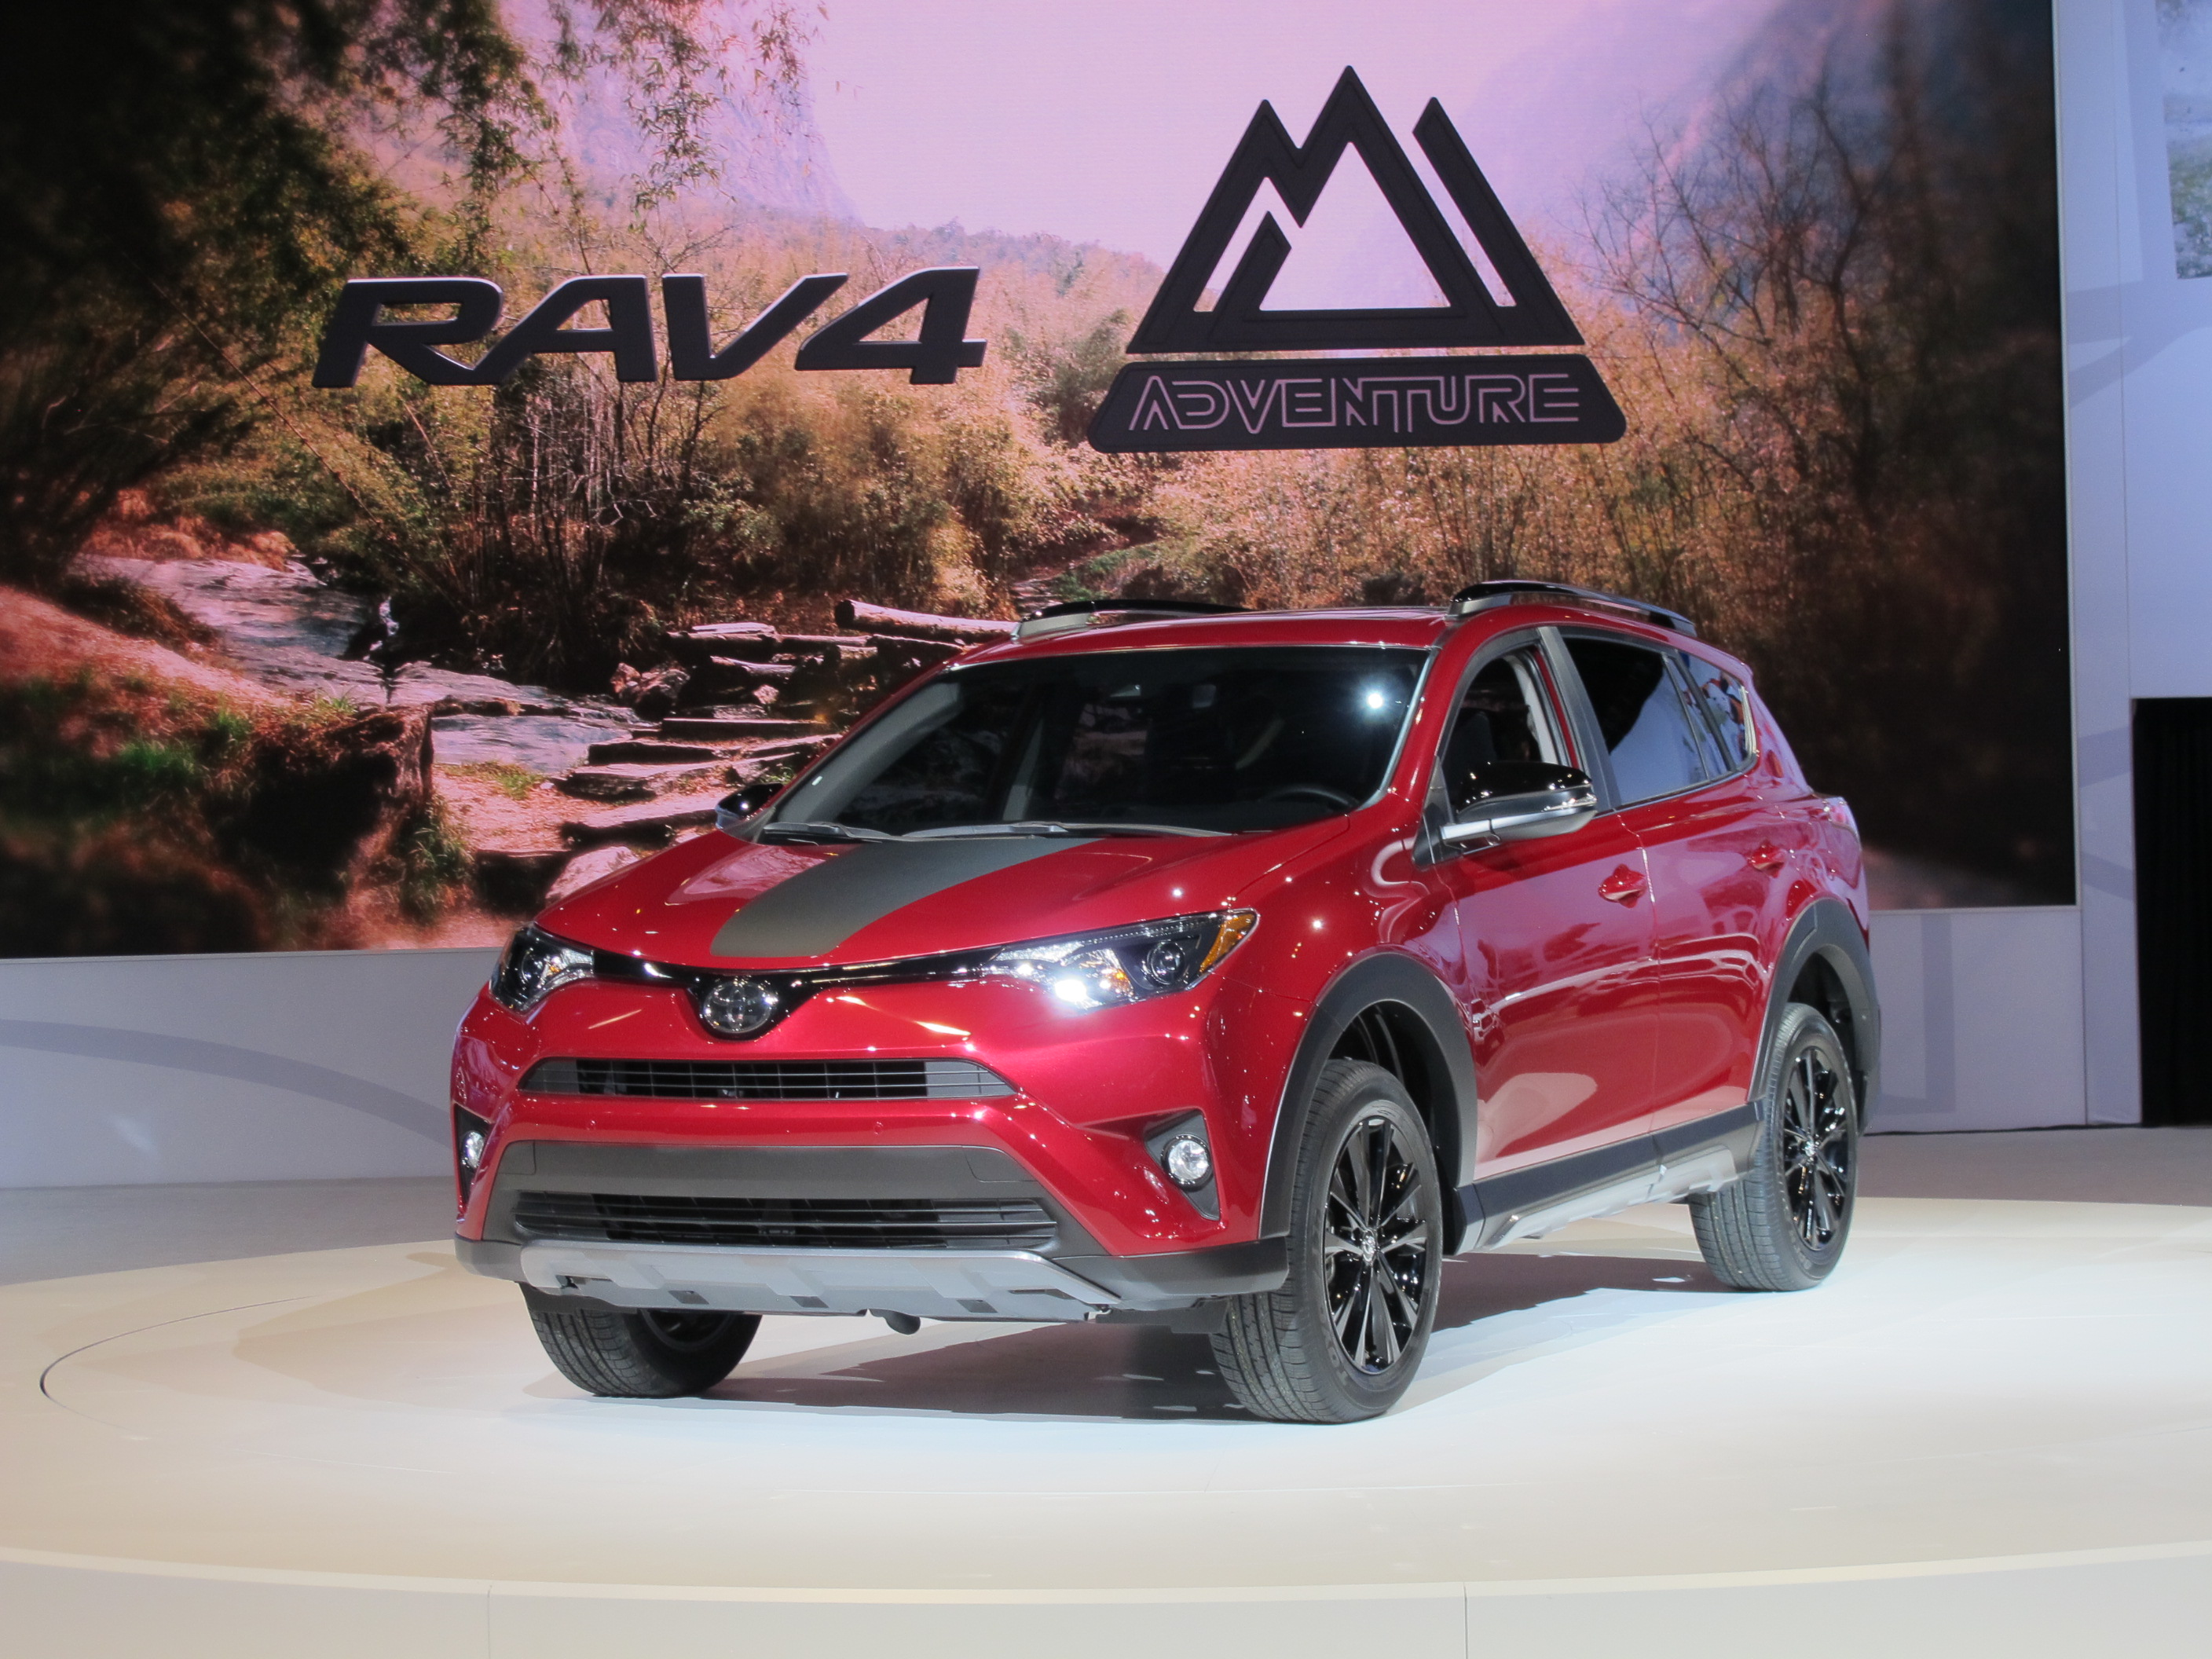 Land Rover Fort Worth >> 2018 Toyota RAV4 Adventure brings hints of outdoorsiness for $28,695